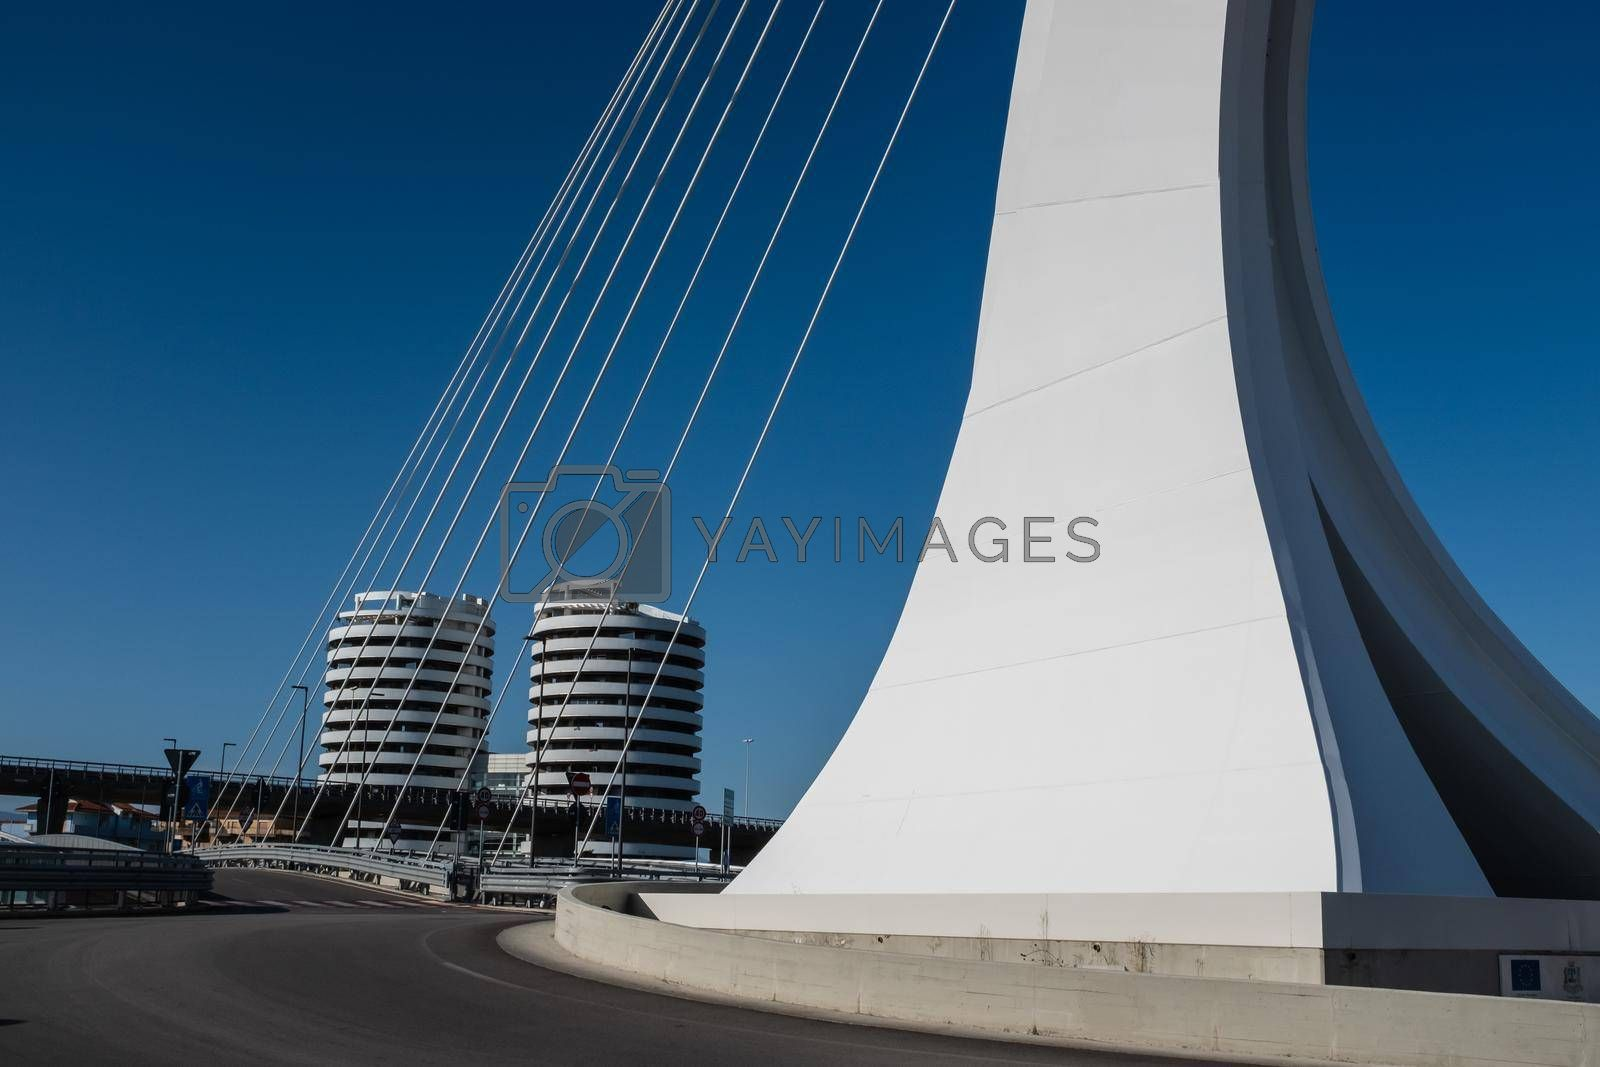 Street level view of Ennio Flaiano Bridge, a cable-stayed bridge with a single pylon located in the center of the traffic circle on the north side of the Pescara river